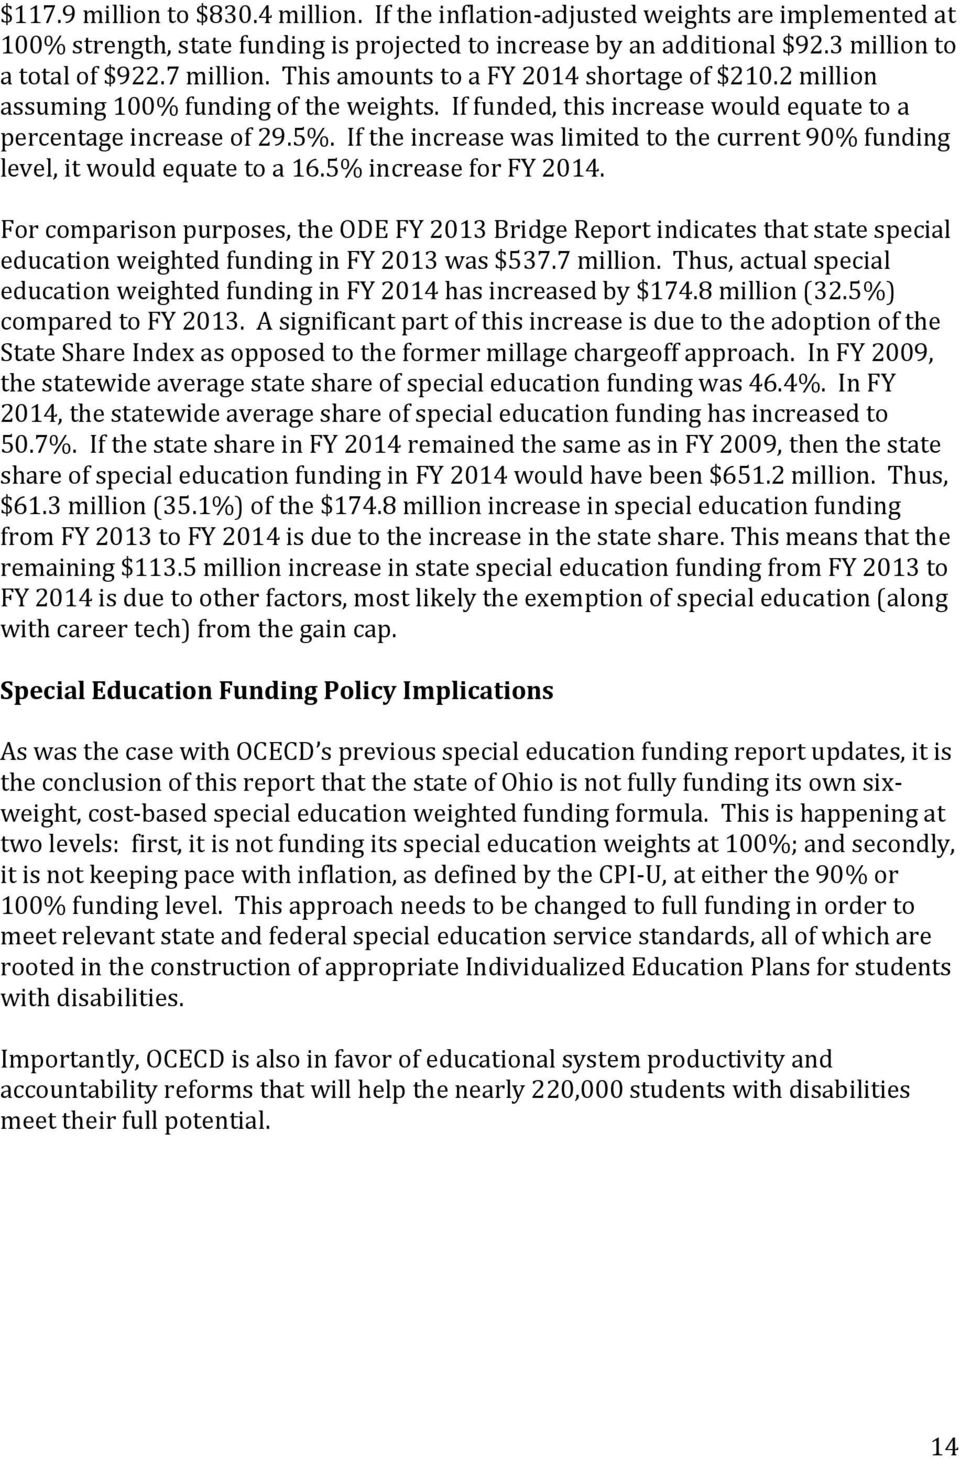 If the increase was limited to the current 90% funding level, it would equate to a 16.5% increase for FY 2014.